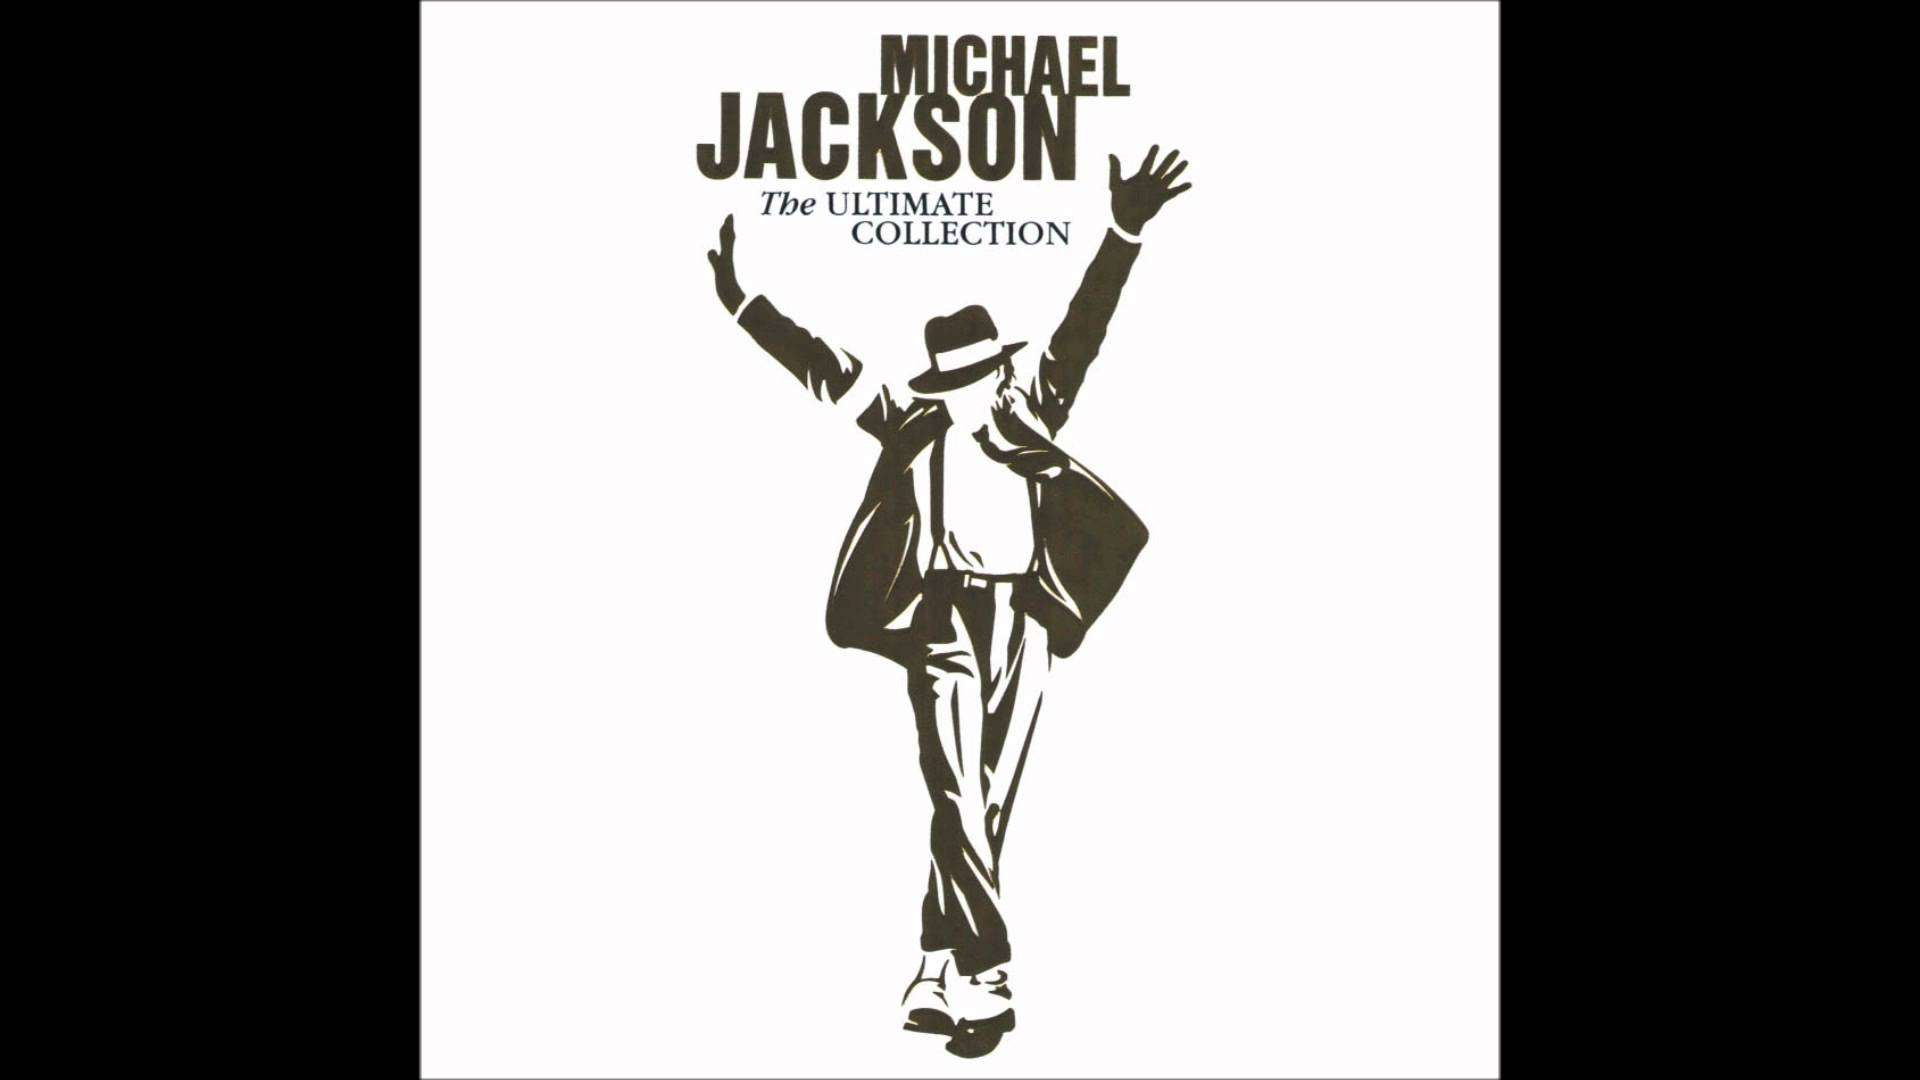 Michael Jackson - Someone Put Your Hand Out [Audio HQ] HD - YouTube